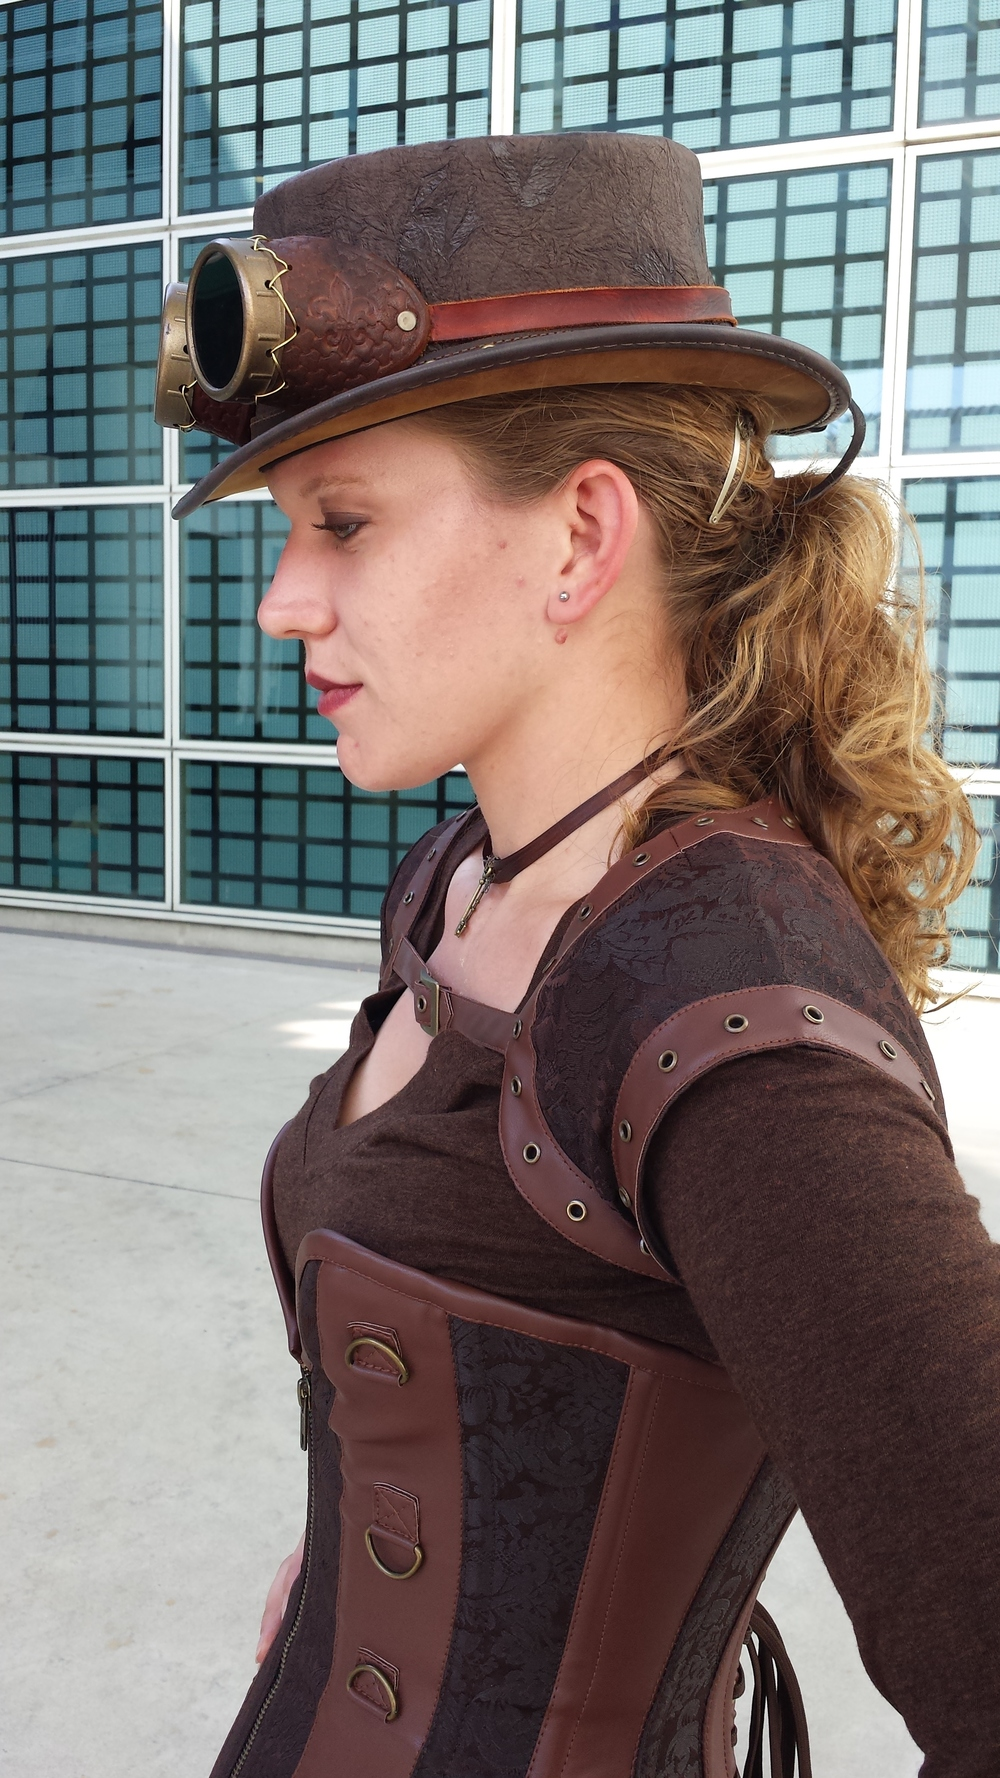 AnimeExpo 2013 - Steampunk